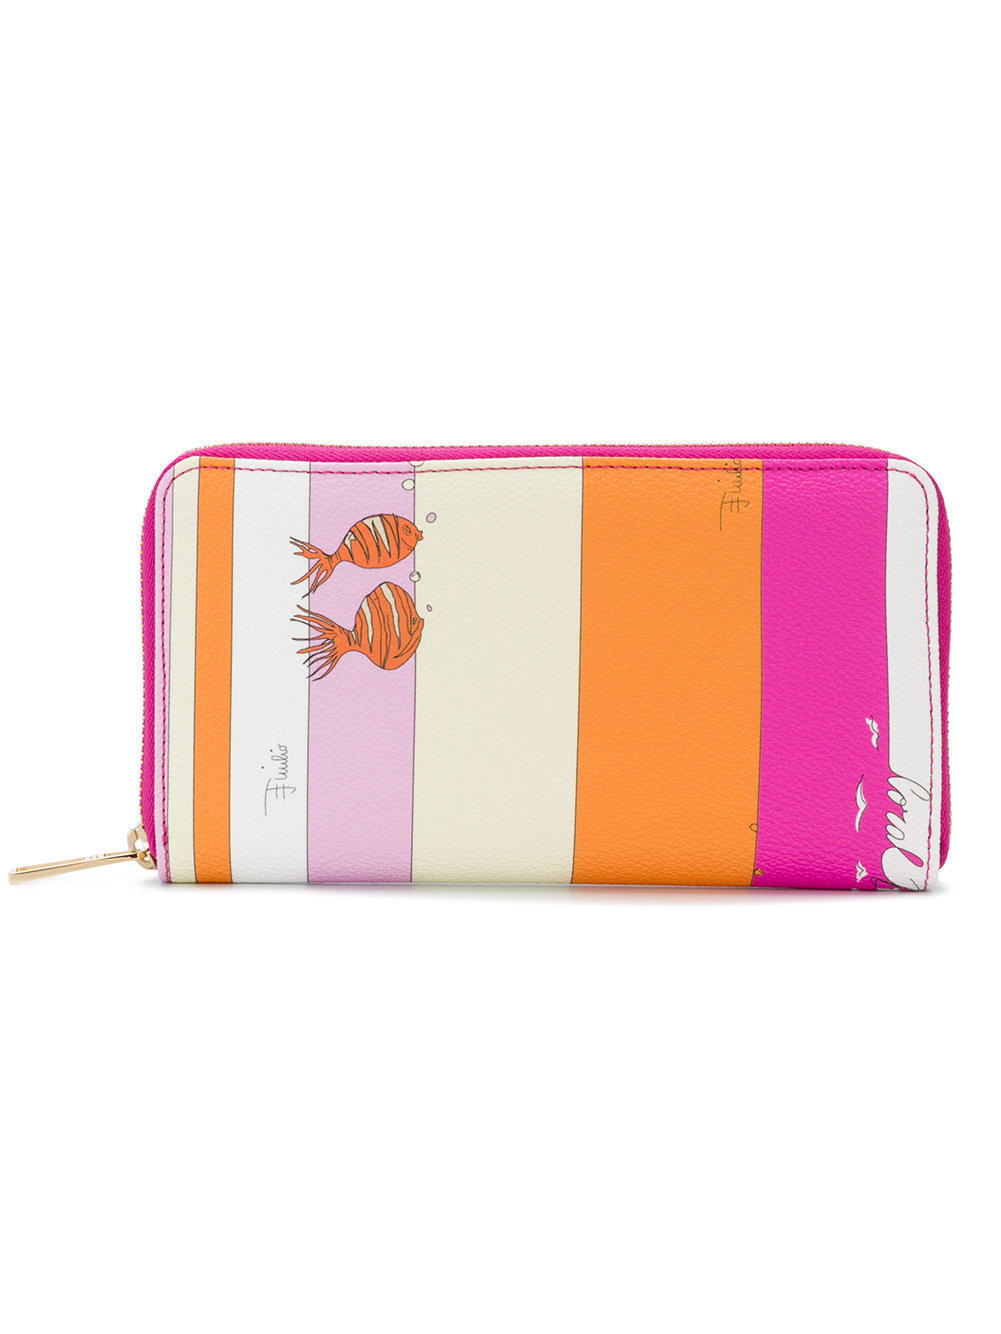 38dcd21cd2f87 Emilio Pucci stripes and fish zip around continental wallet - Pink